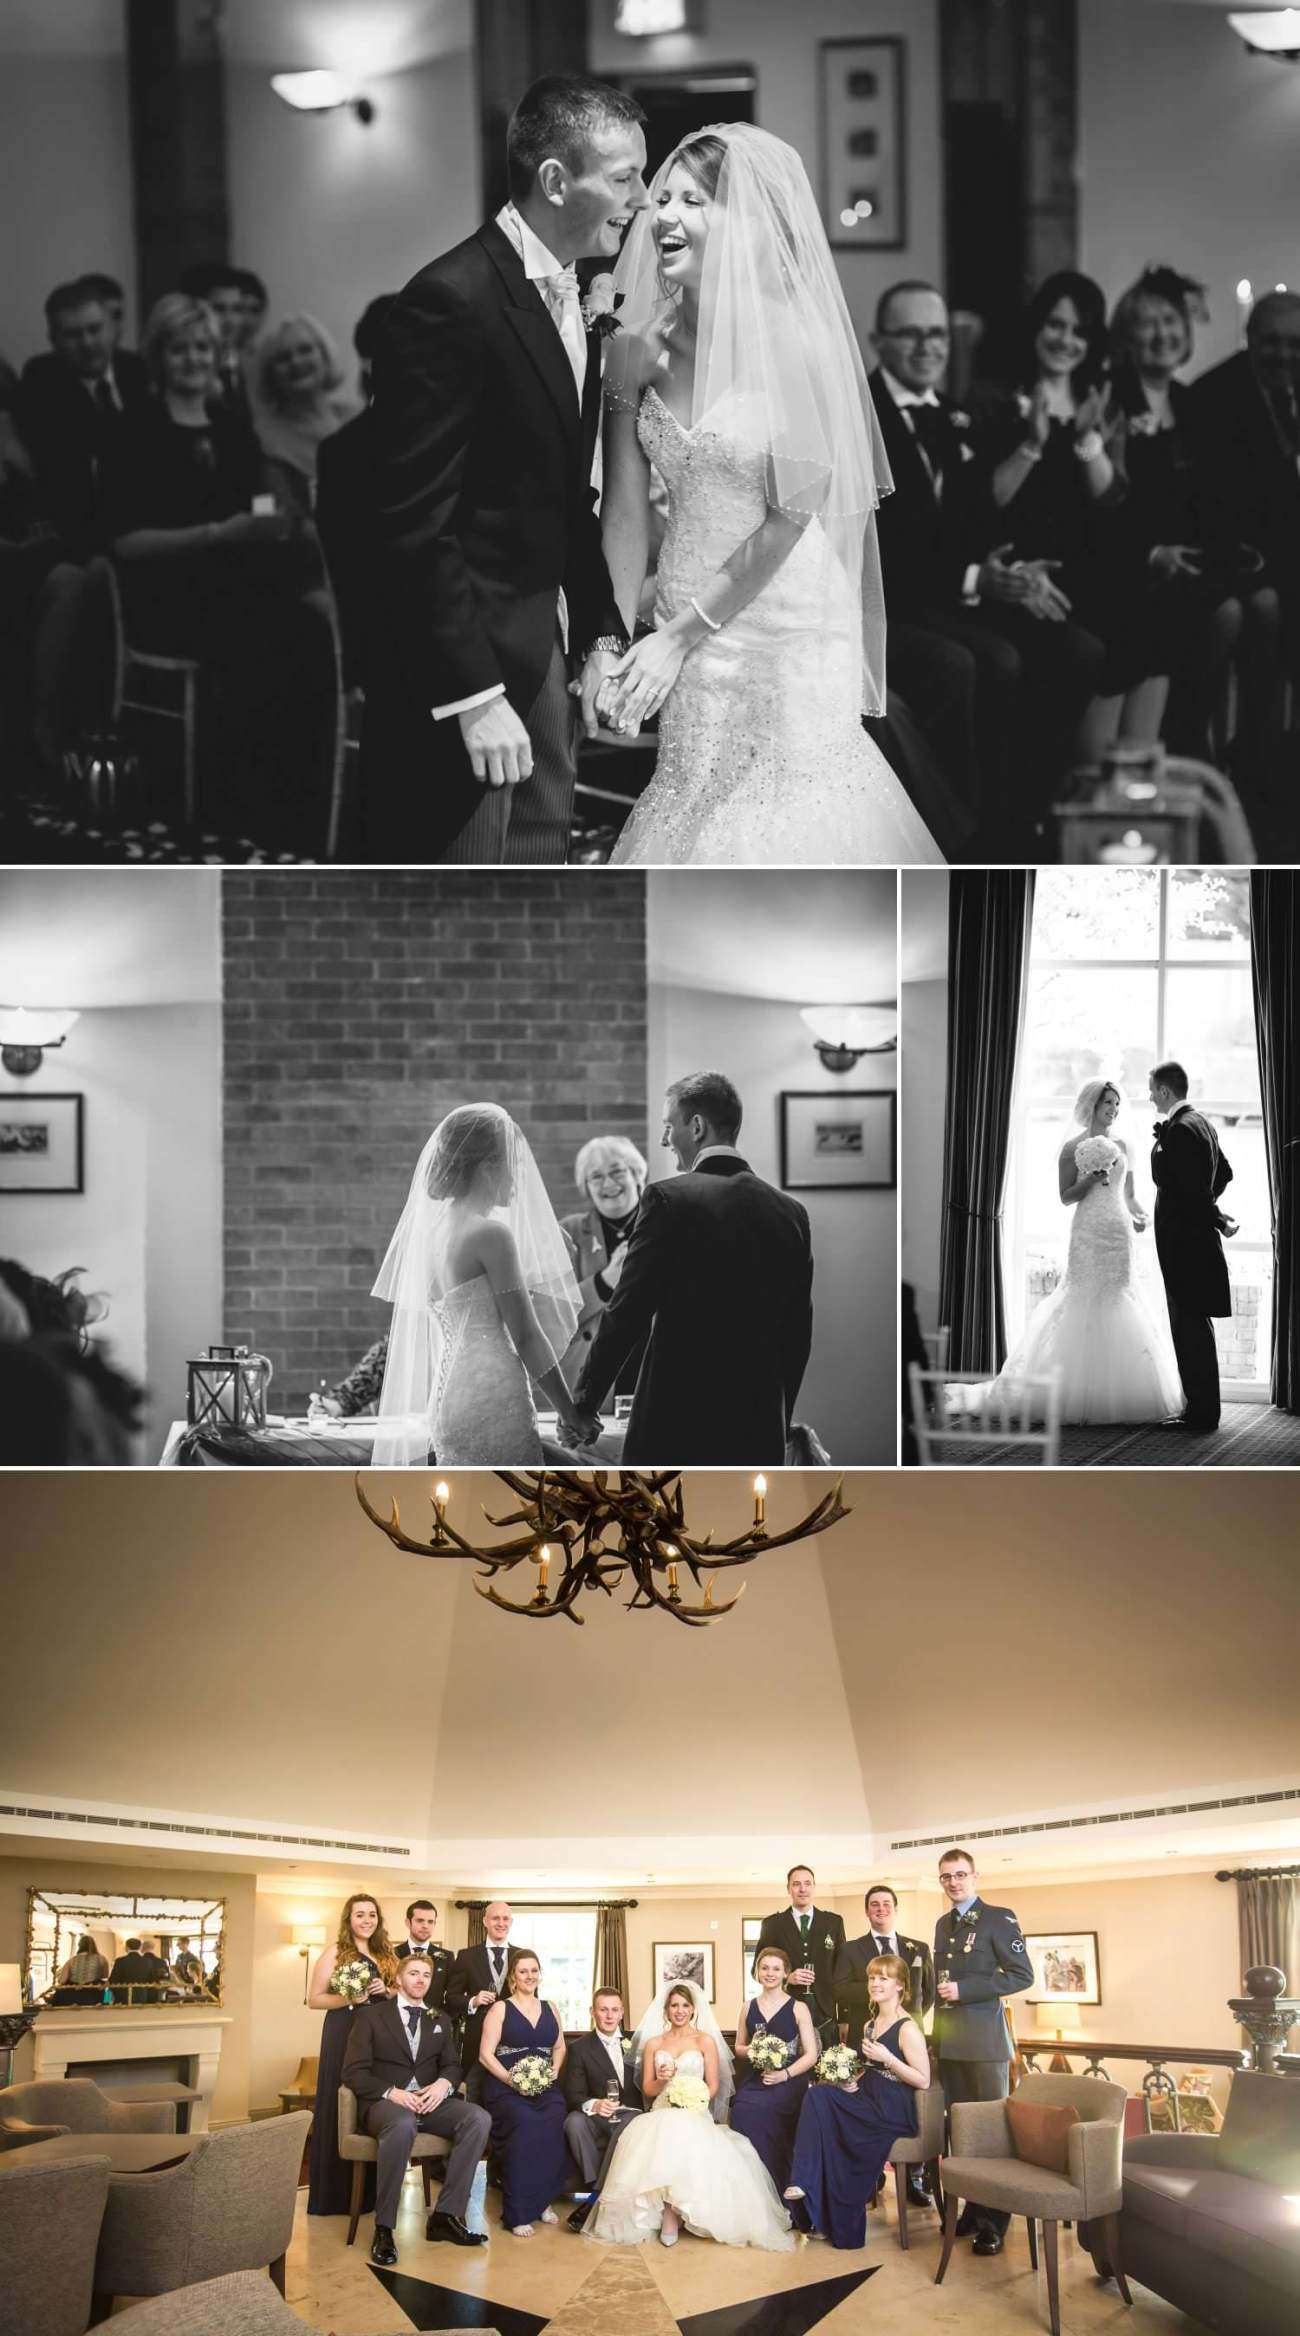 Wedding Photography of the celebrations at Carden Park Hotel, Chester, Cheshire